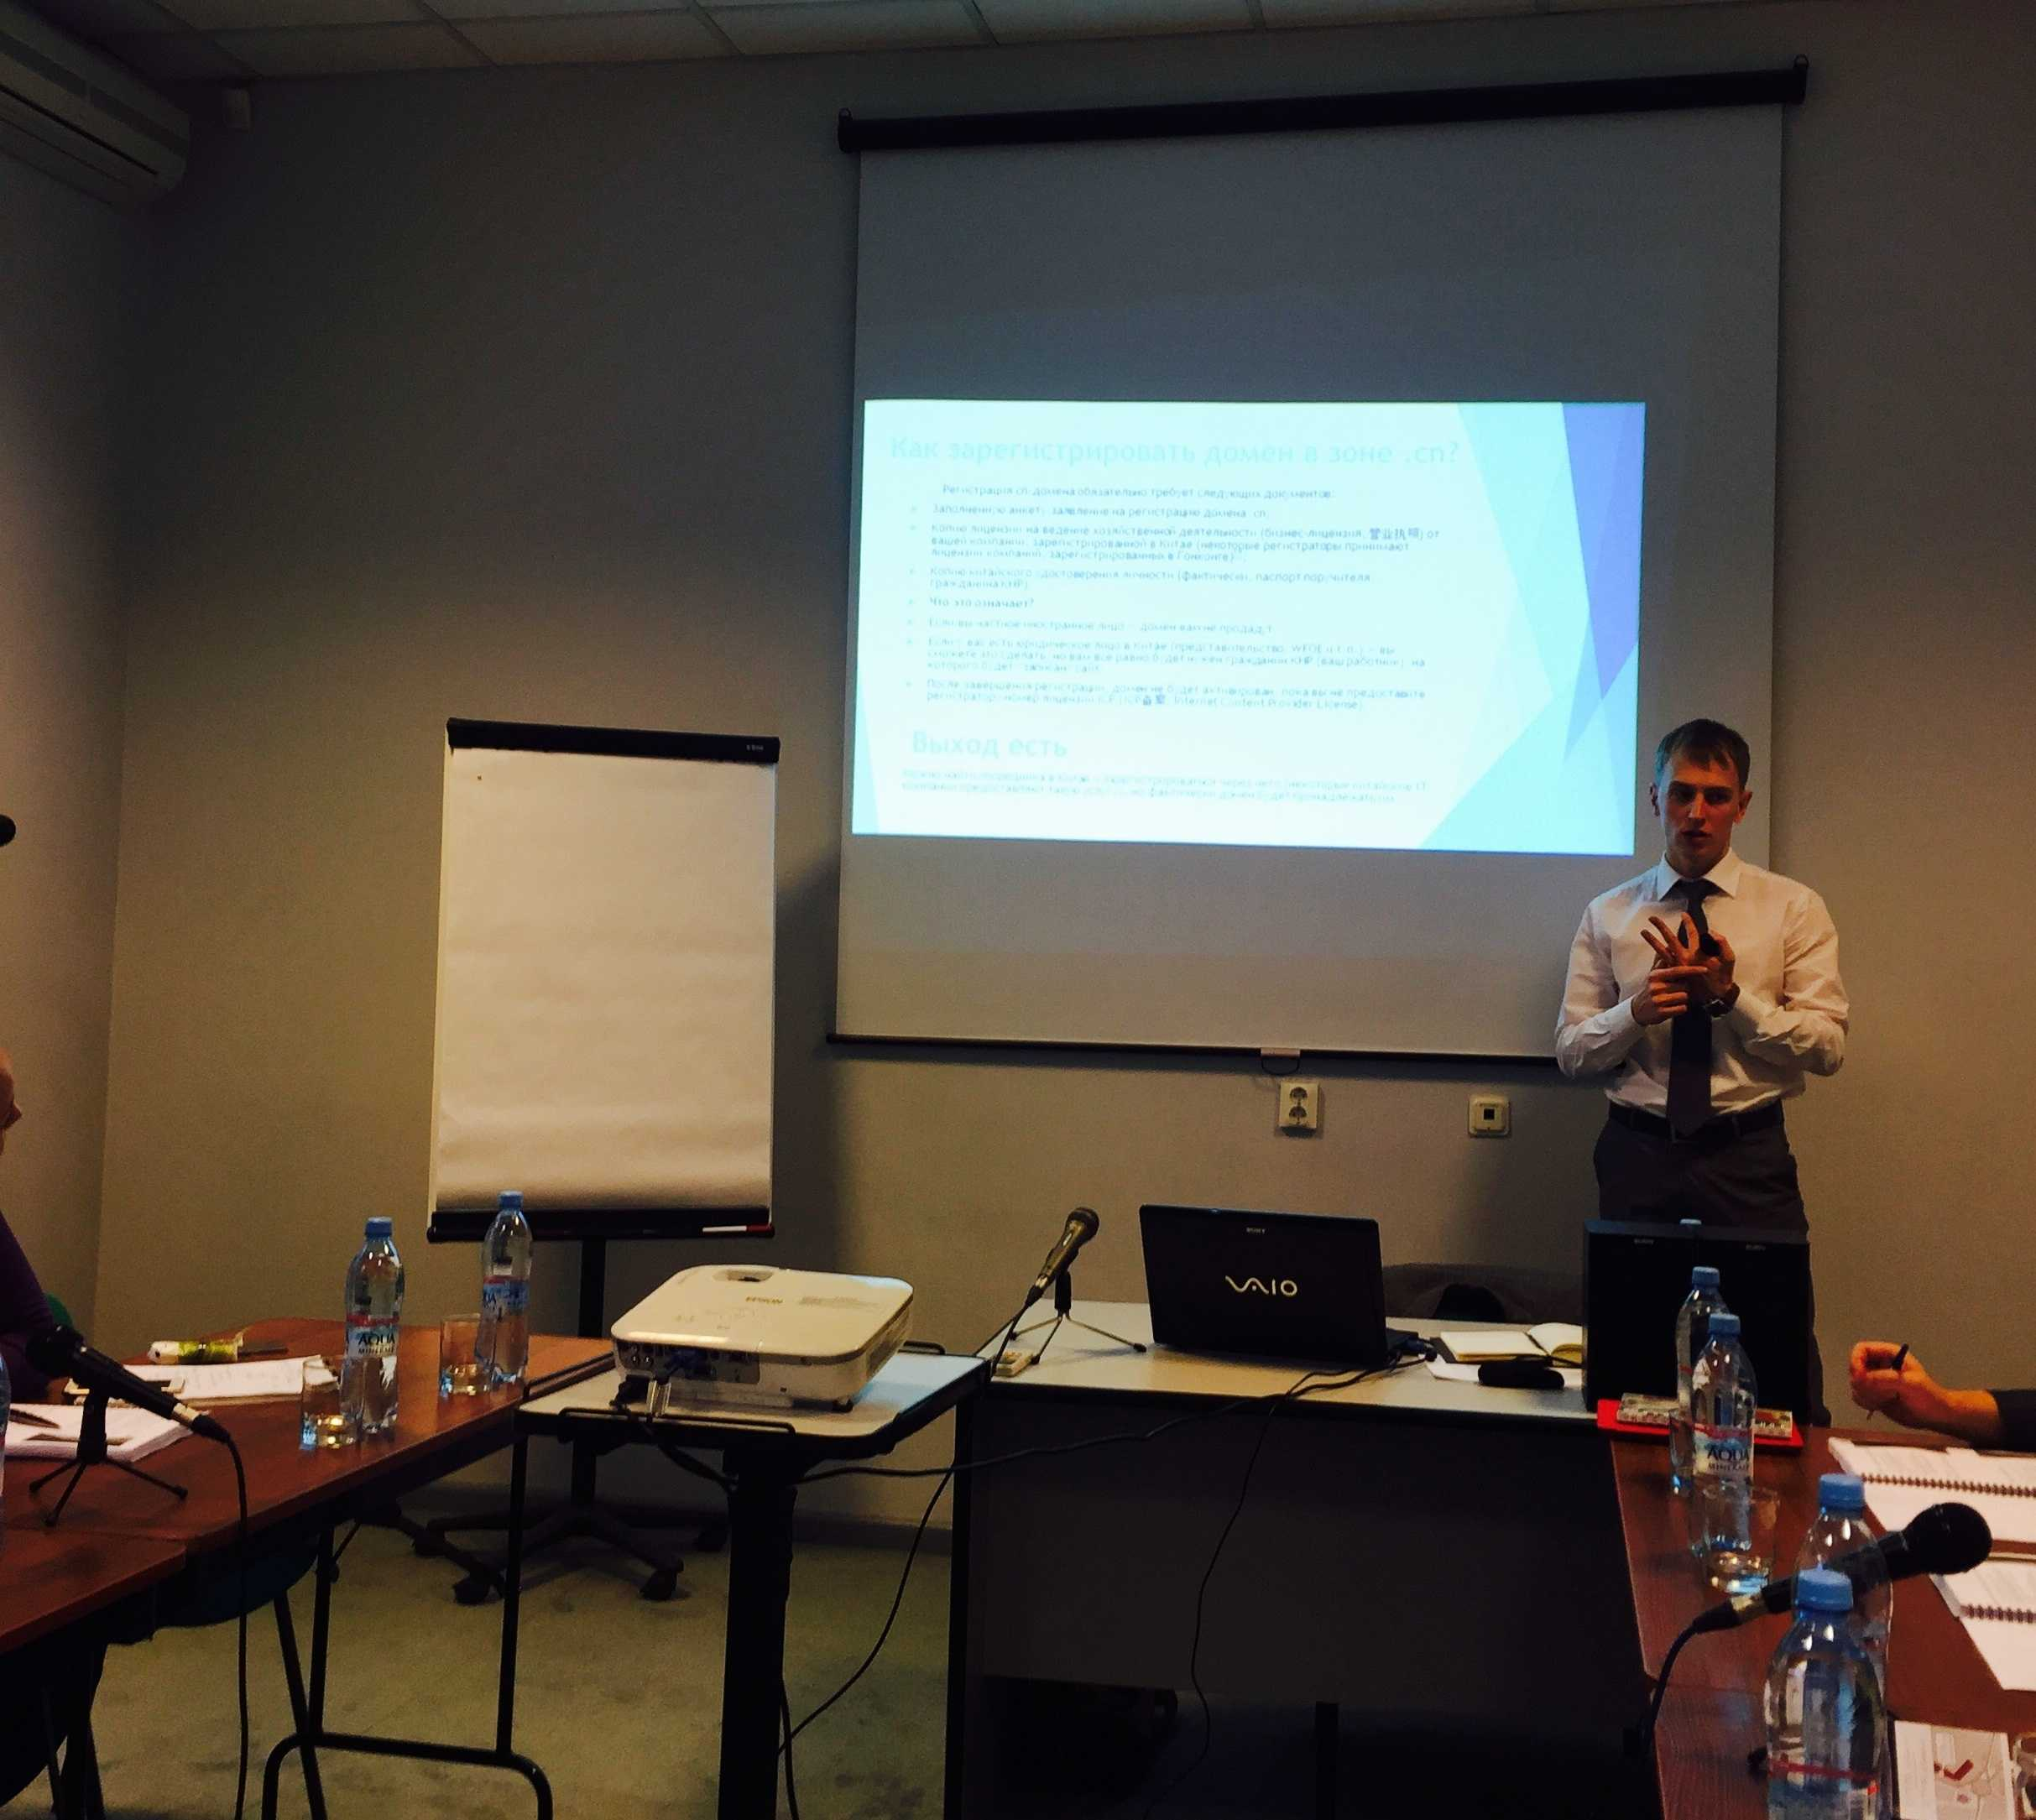 RMAA Group`s Seminar: Sales in Hotel Business, Tools, E-Commerce, pic. 3